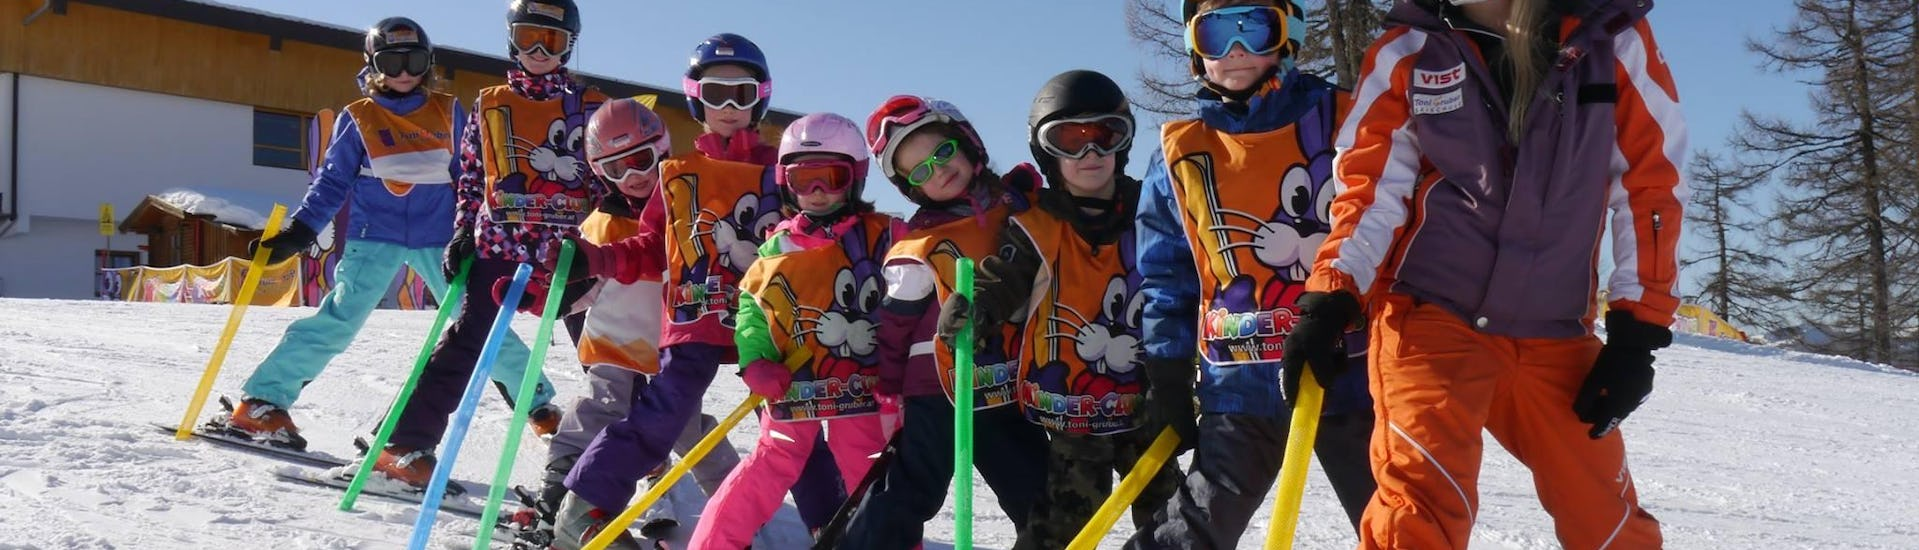 "Ski Lessons ""Half Day"" for Kids (4-14 years) - All Levels"